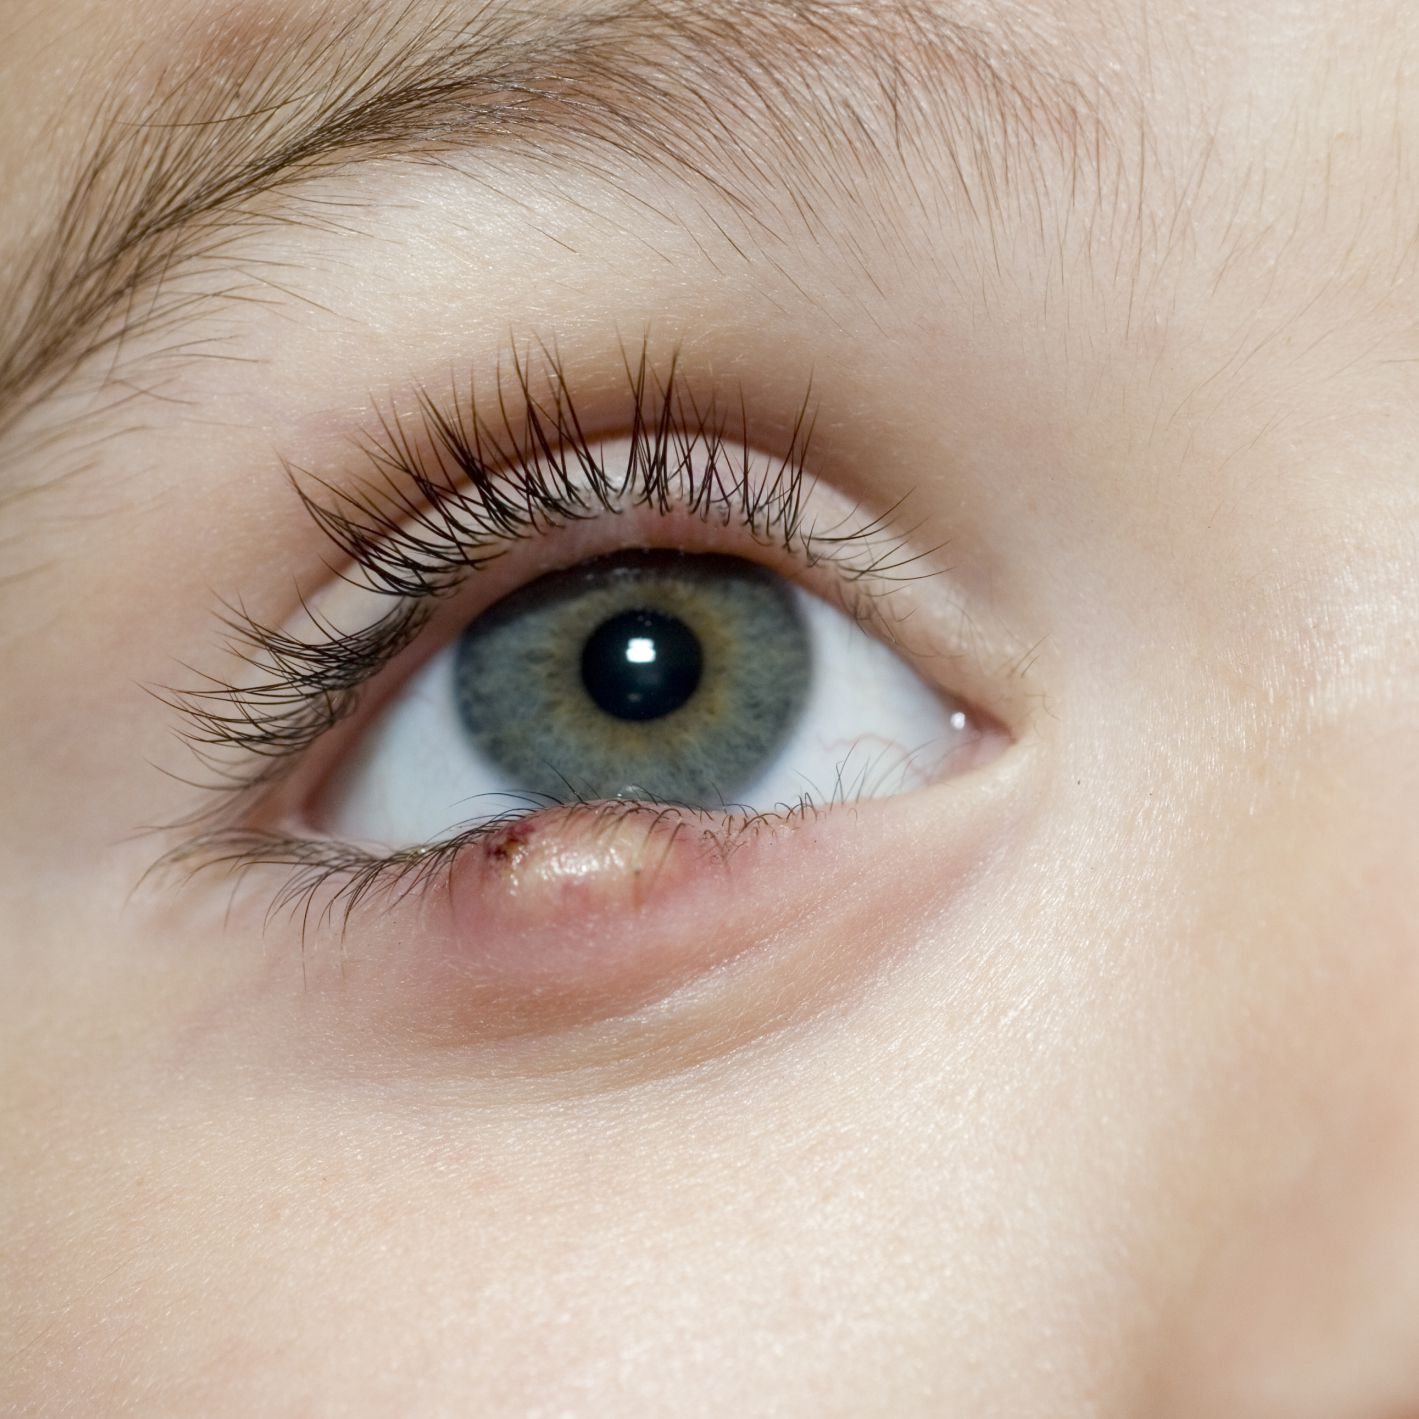 Causes and Treatments of Styes and Eyelid Bumps